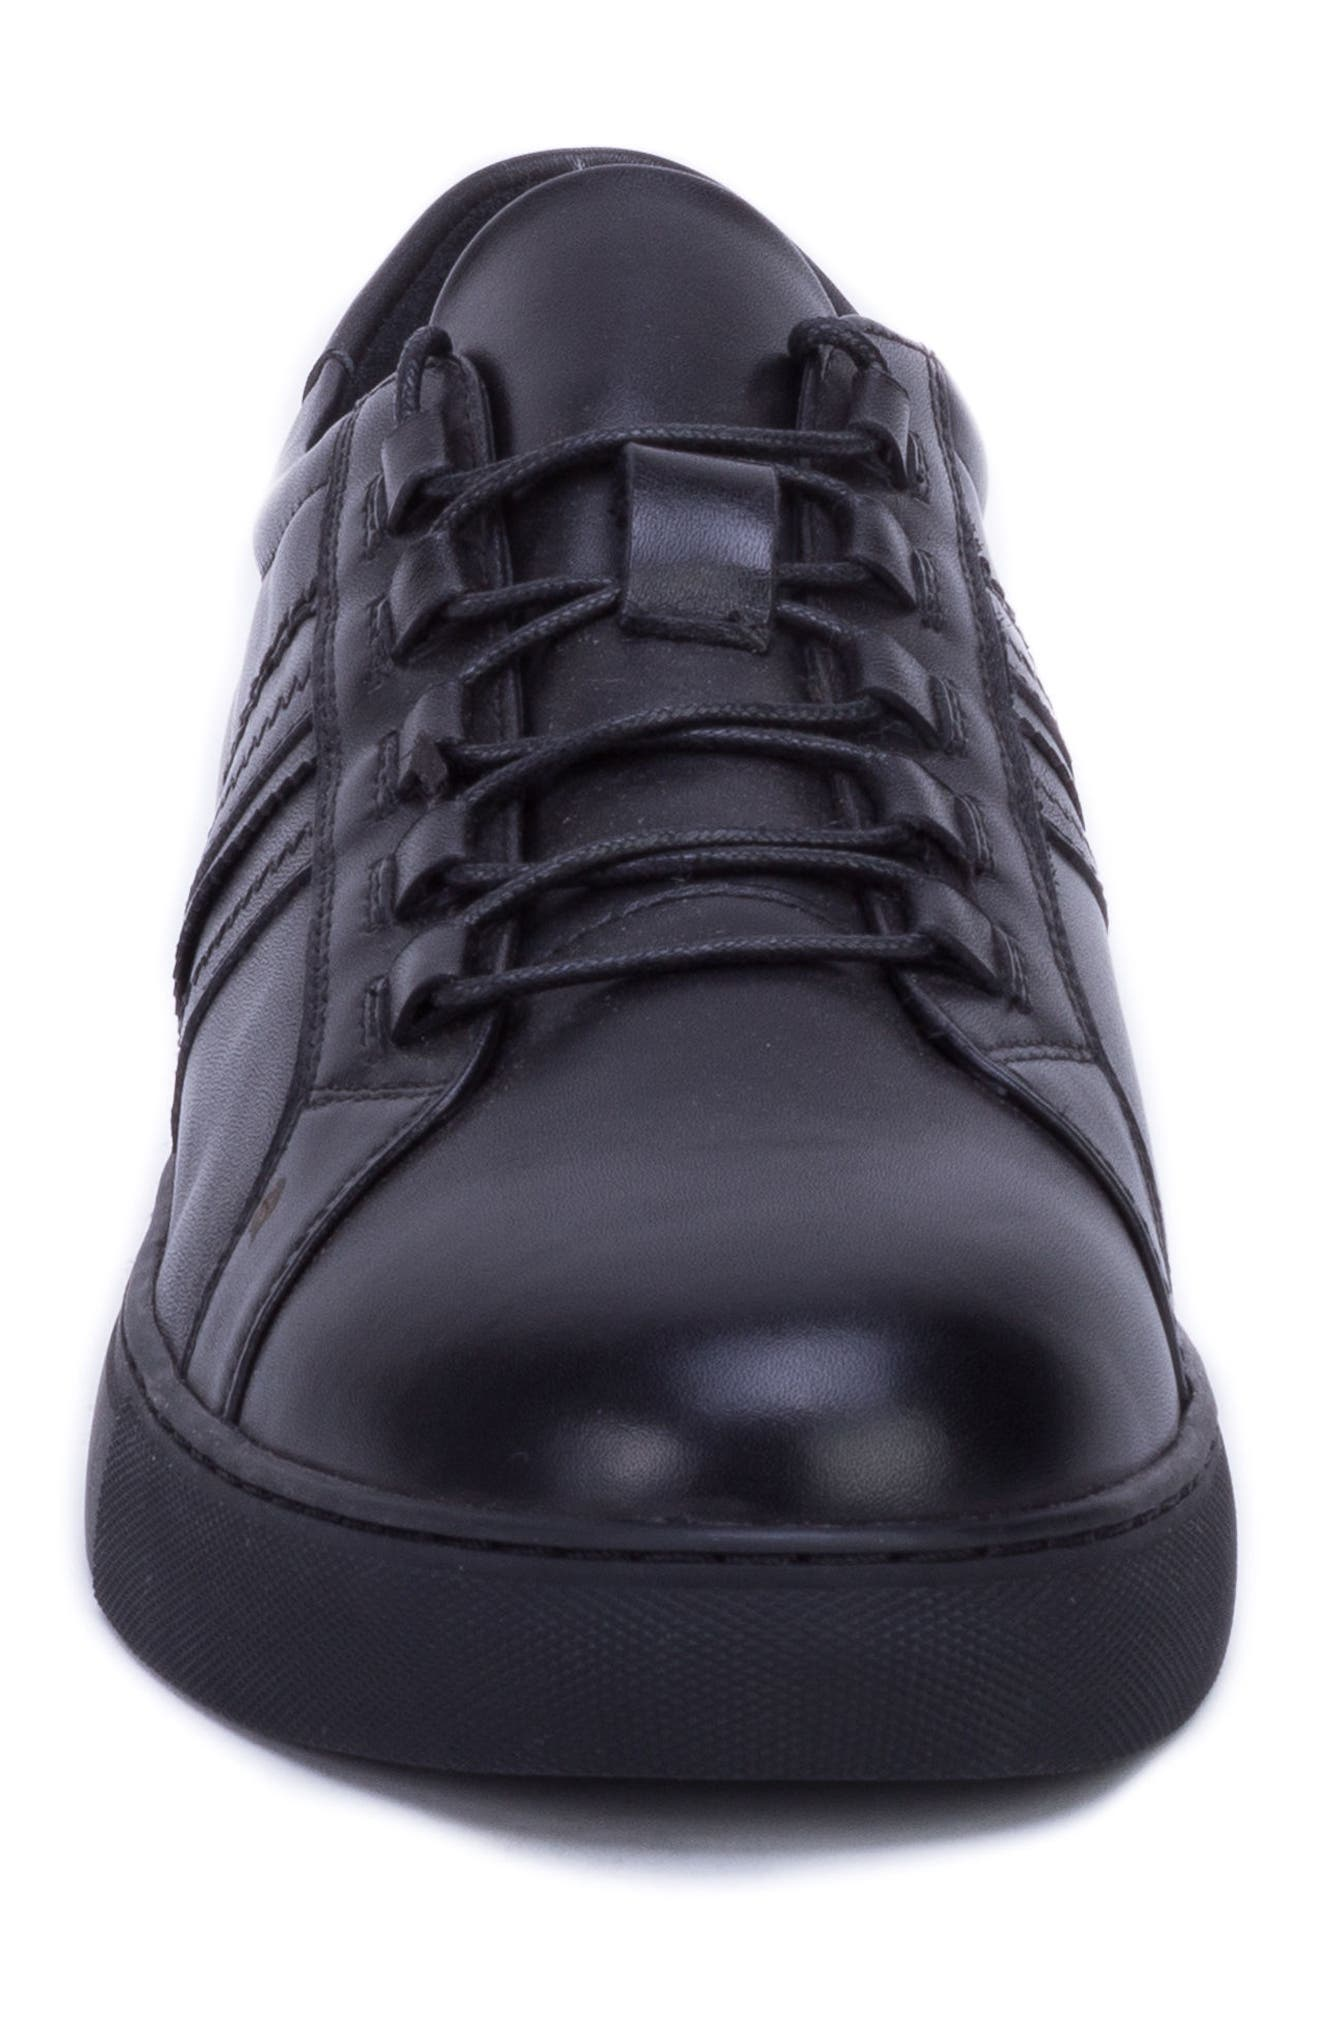 Horton Studded Low Top Sneaker,                             Alternate thumbnail 4, color,                             BLACK LEATHER